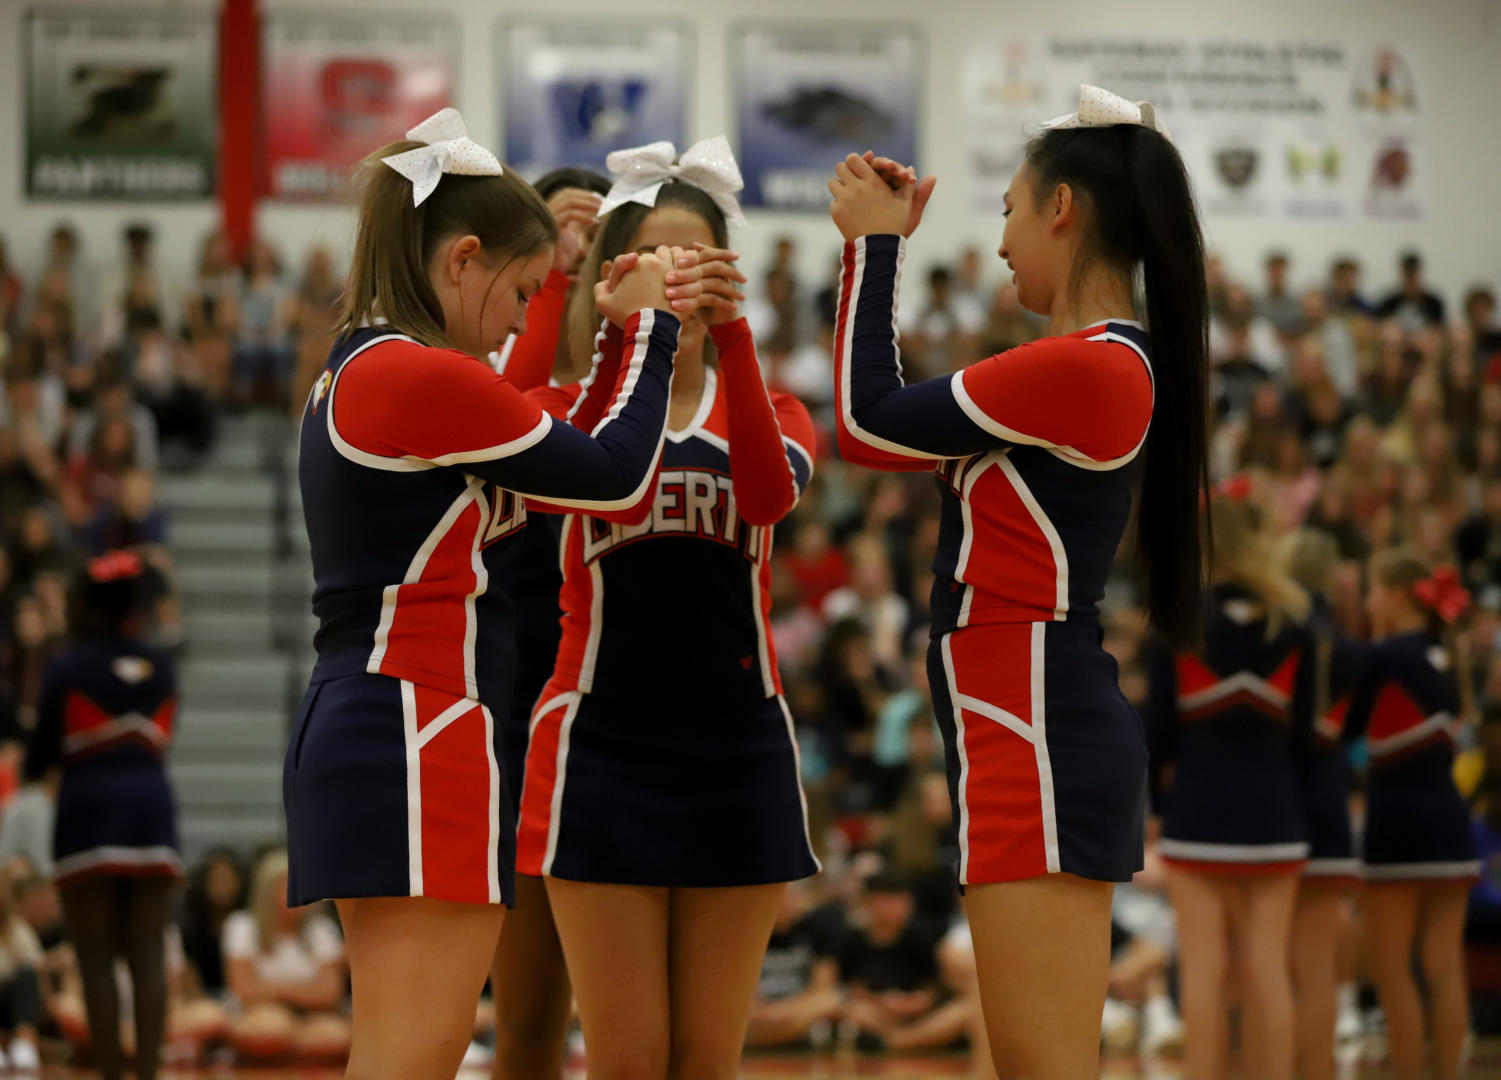 Cheerleaders+prepare+for+their+routine+during+their+performance+at+the+first+day+assembly.+